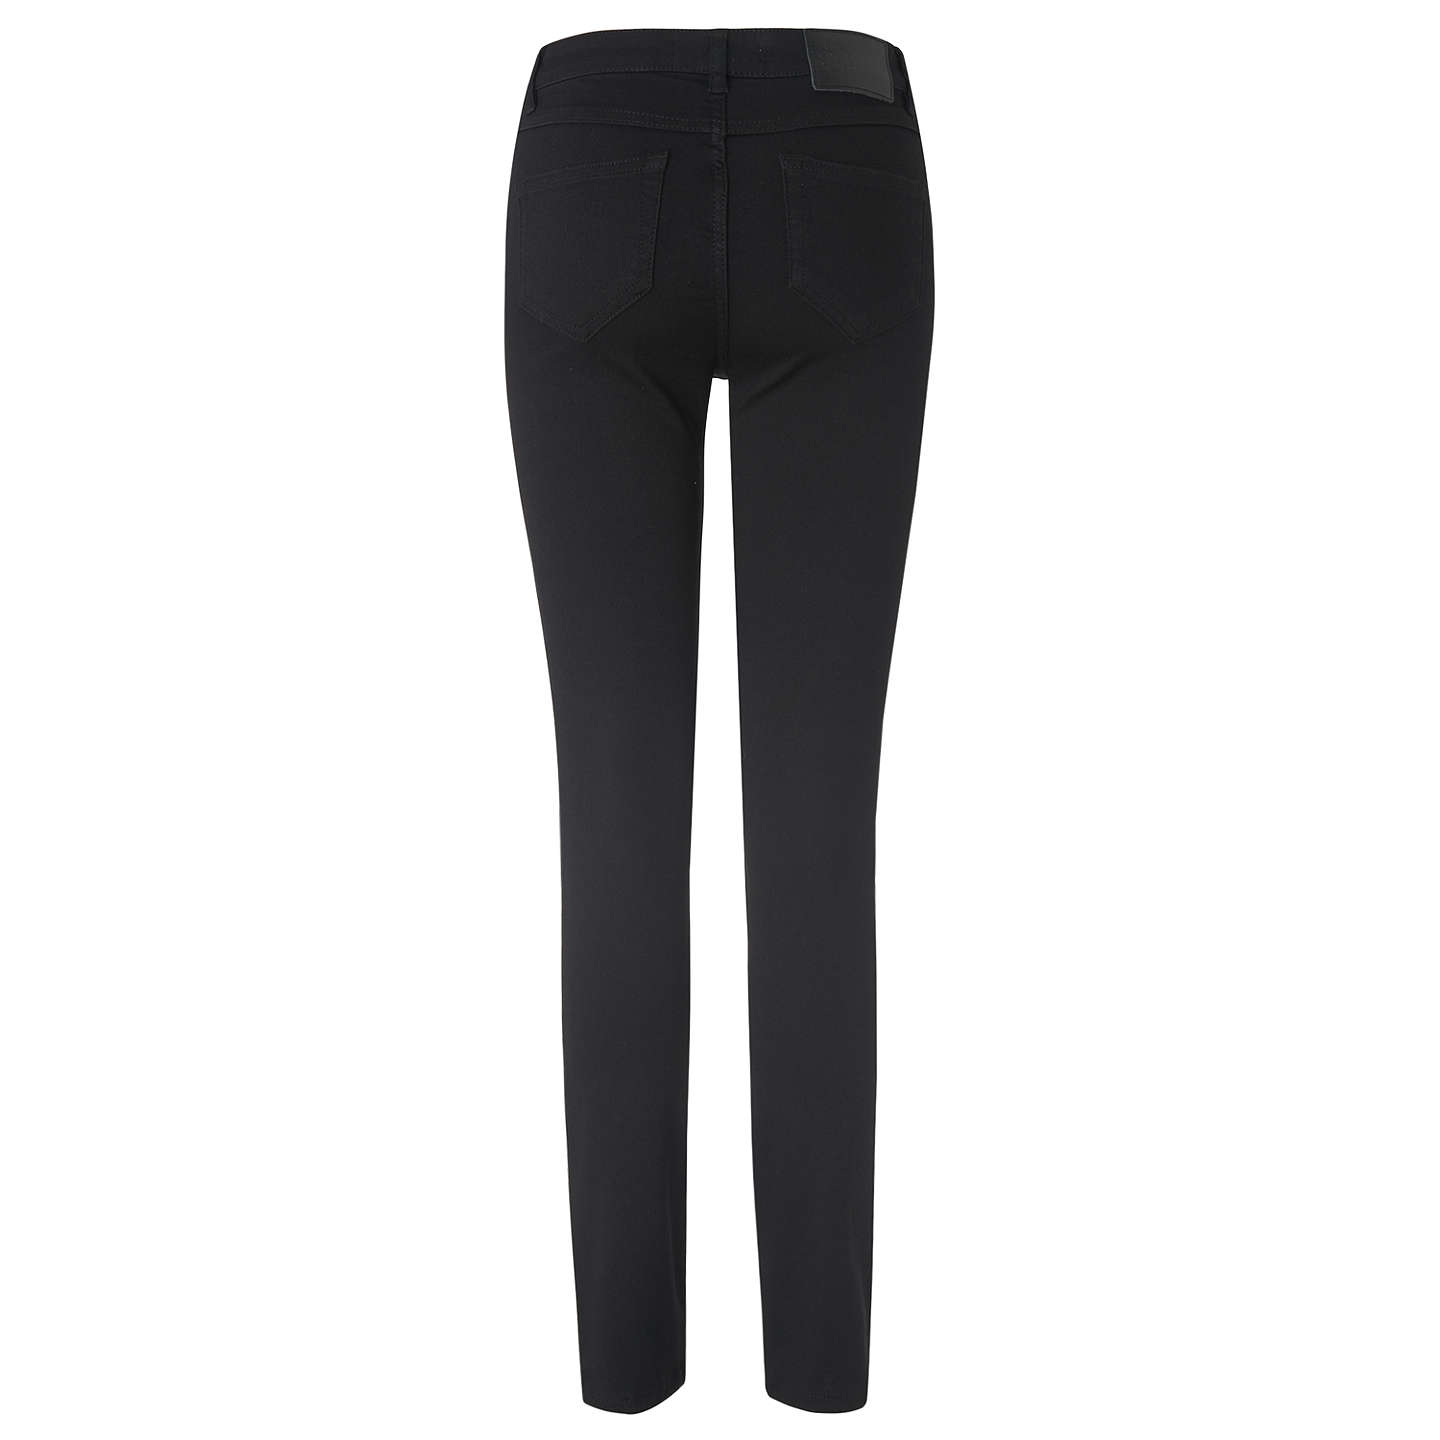 BuyL.K. Bennett Mirium Trousers, Black, 6 Online at johnlewis.com